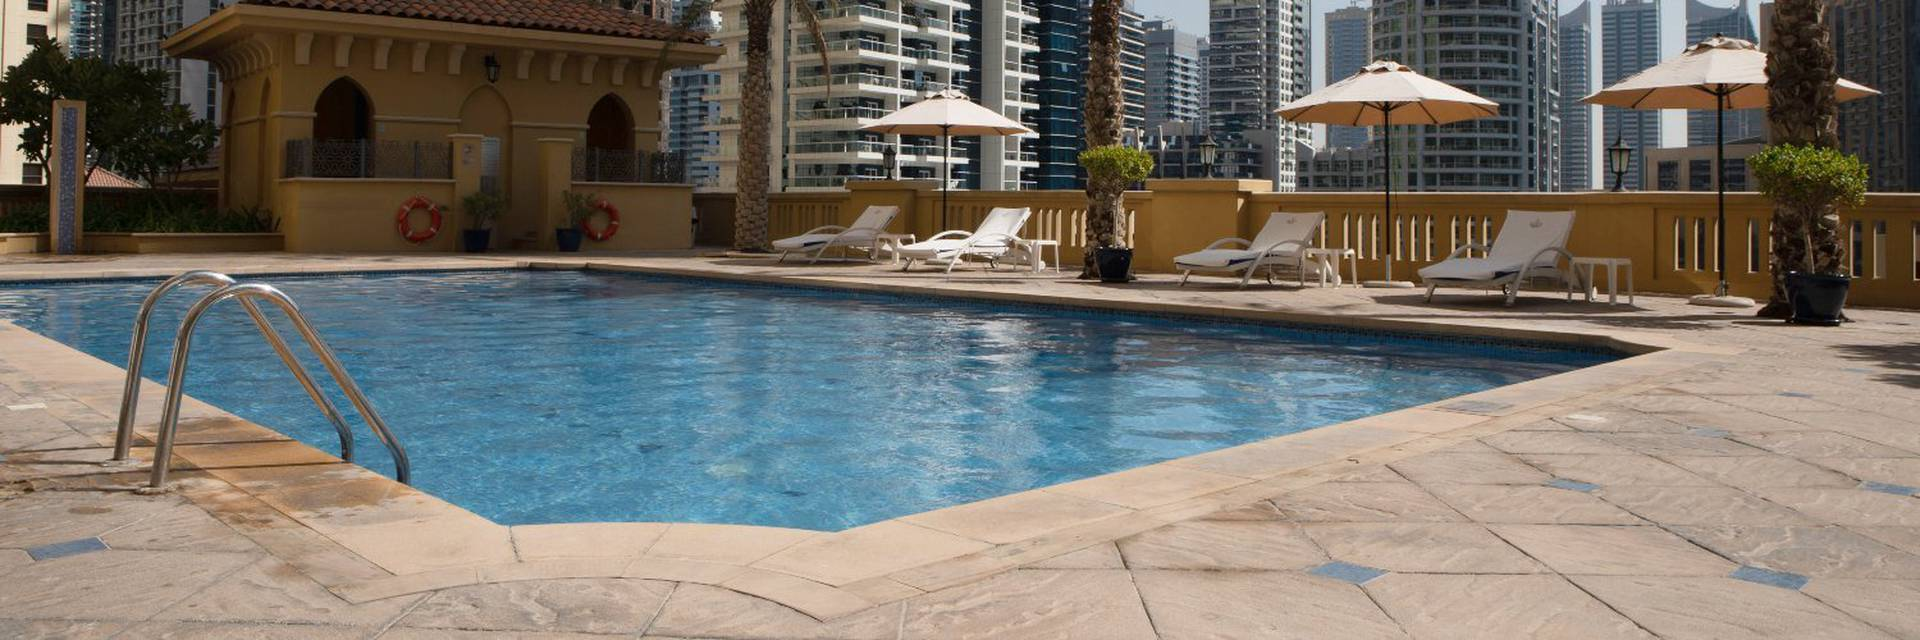 Services suha jbr hotel apartments dubai